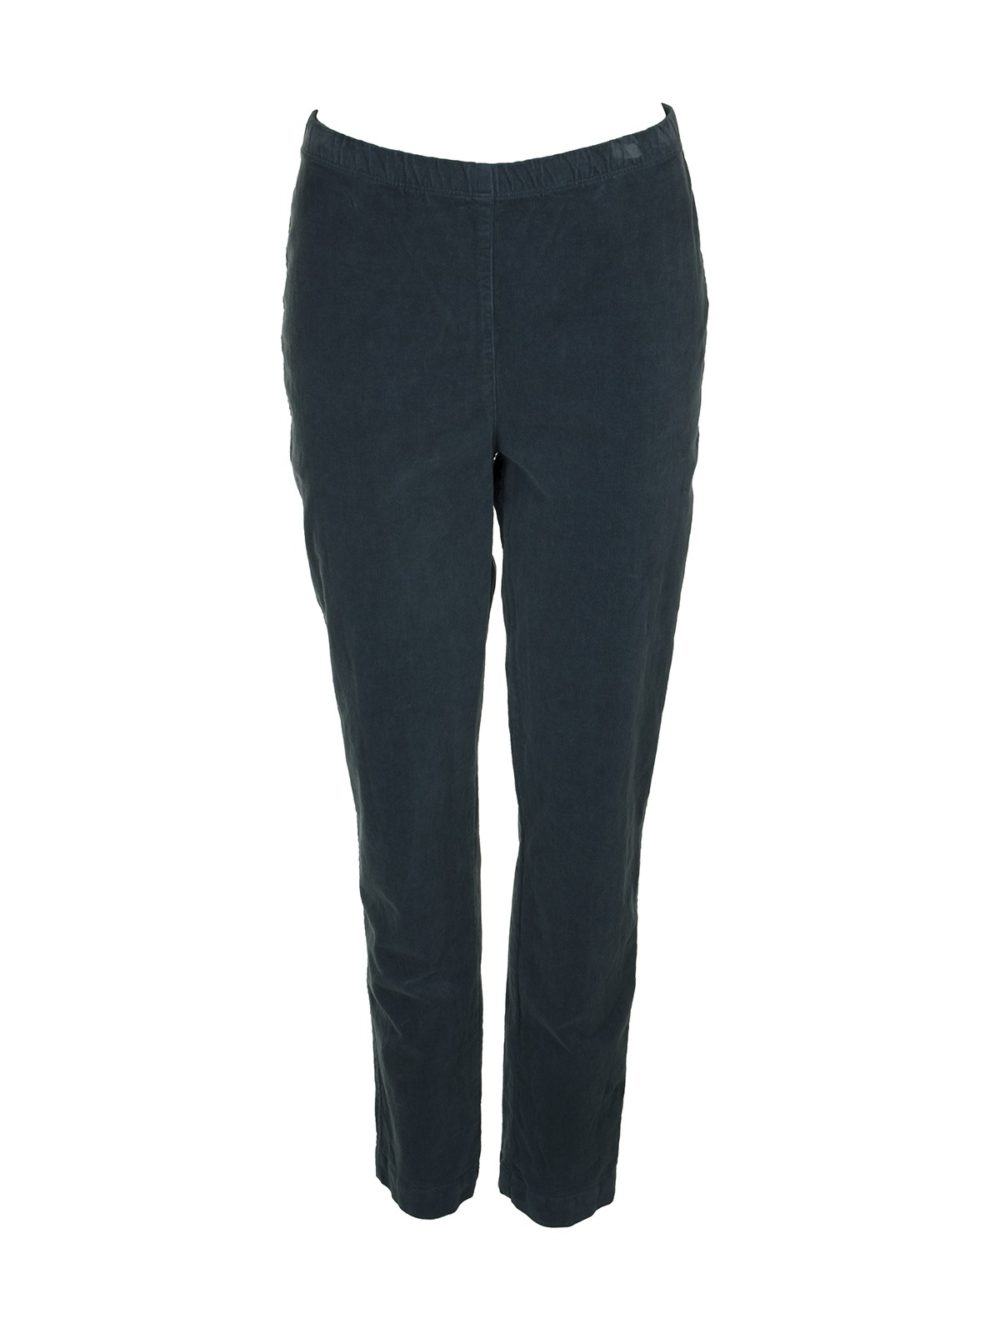 Trousers 3523-M5 Grizas Katie Kerr Women's Clothing